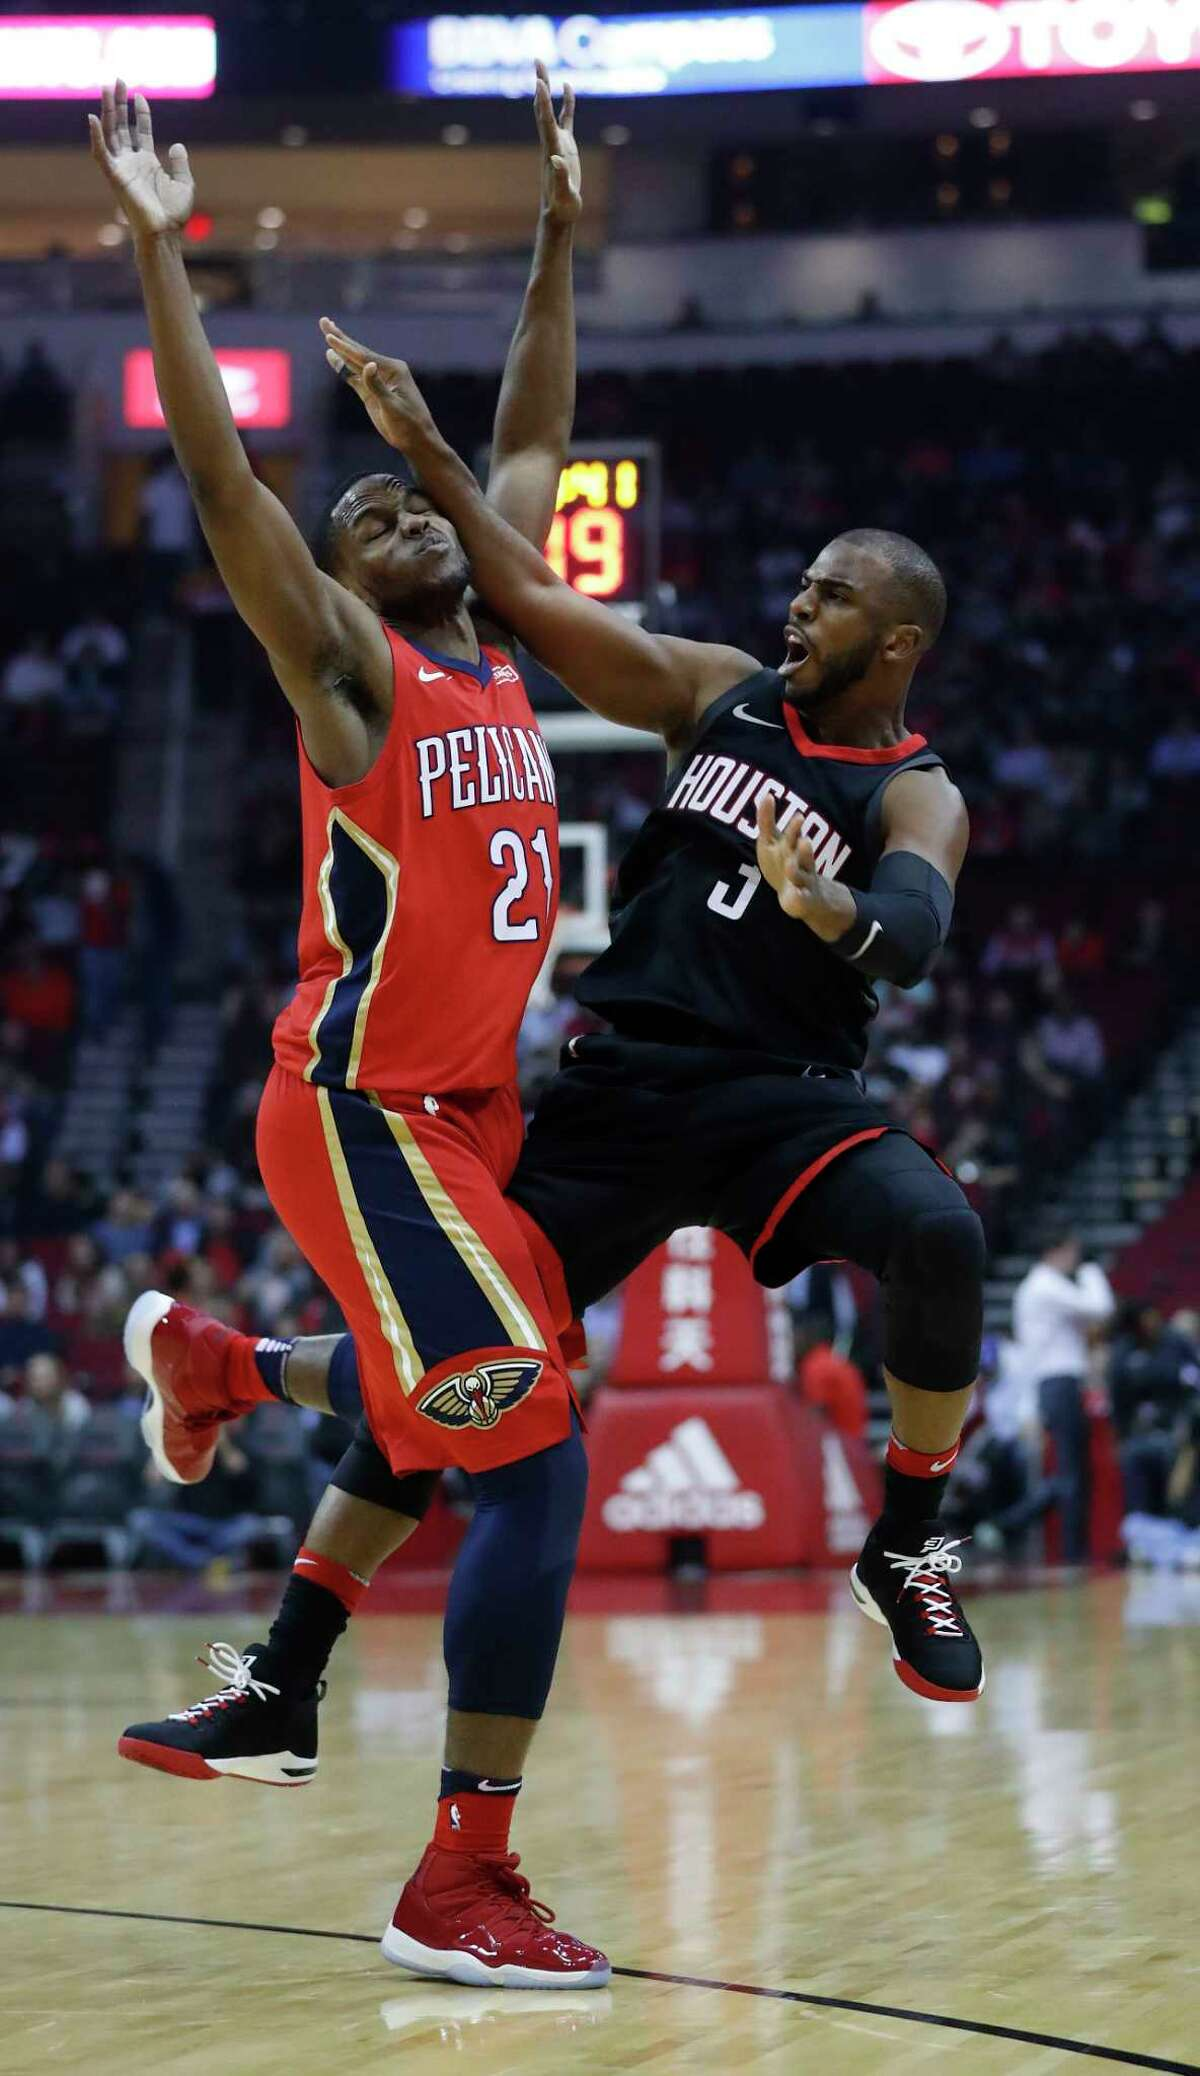 Houston Rockets guard Chris Paul (3) tries to shoot a three-pointer over New Orleans Pelicans forward Darius Miller (21) during the first half of an NBA game at Toyota Center, Monday, Dec. 11, 2017, in Houston.